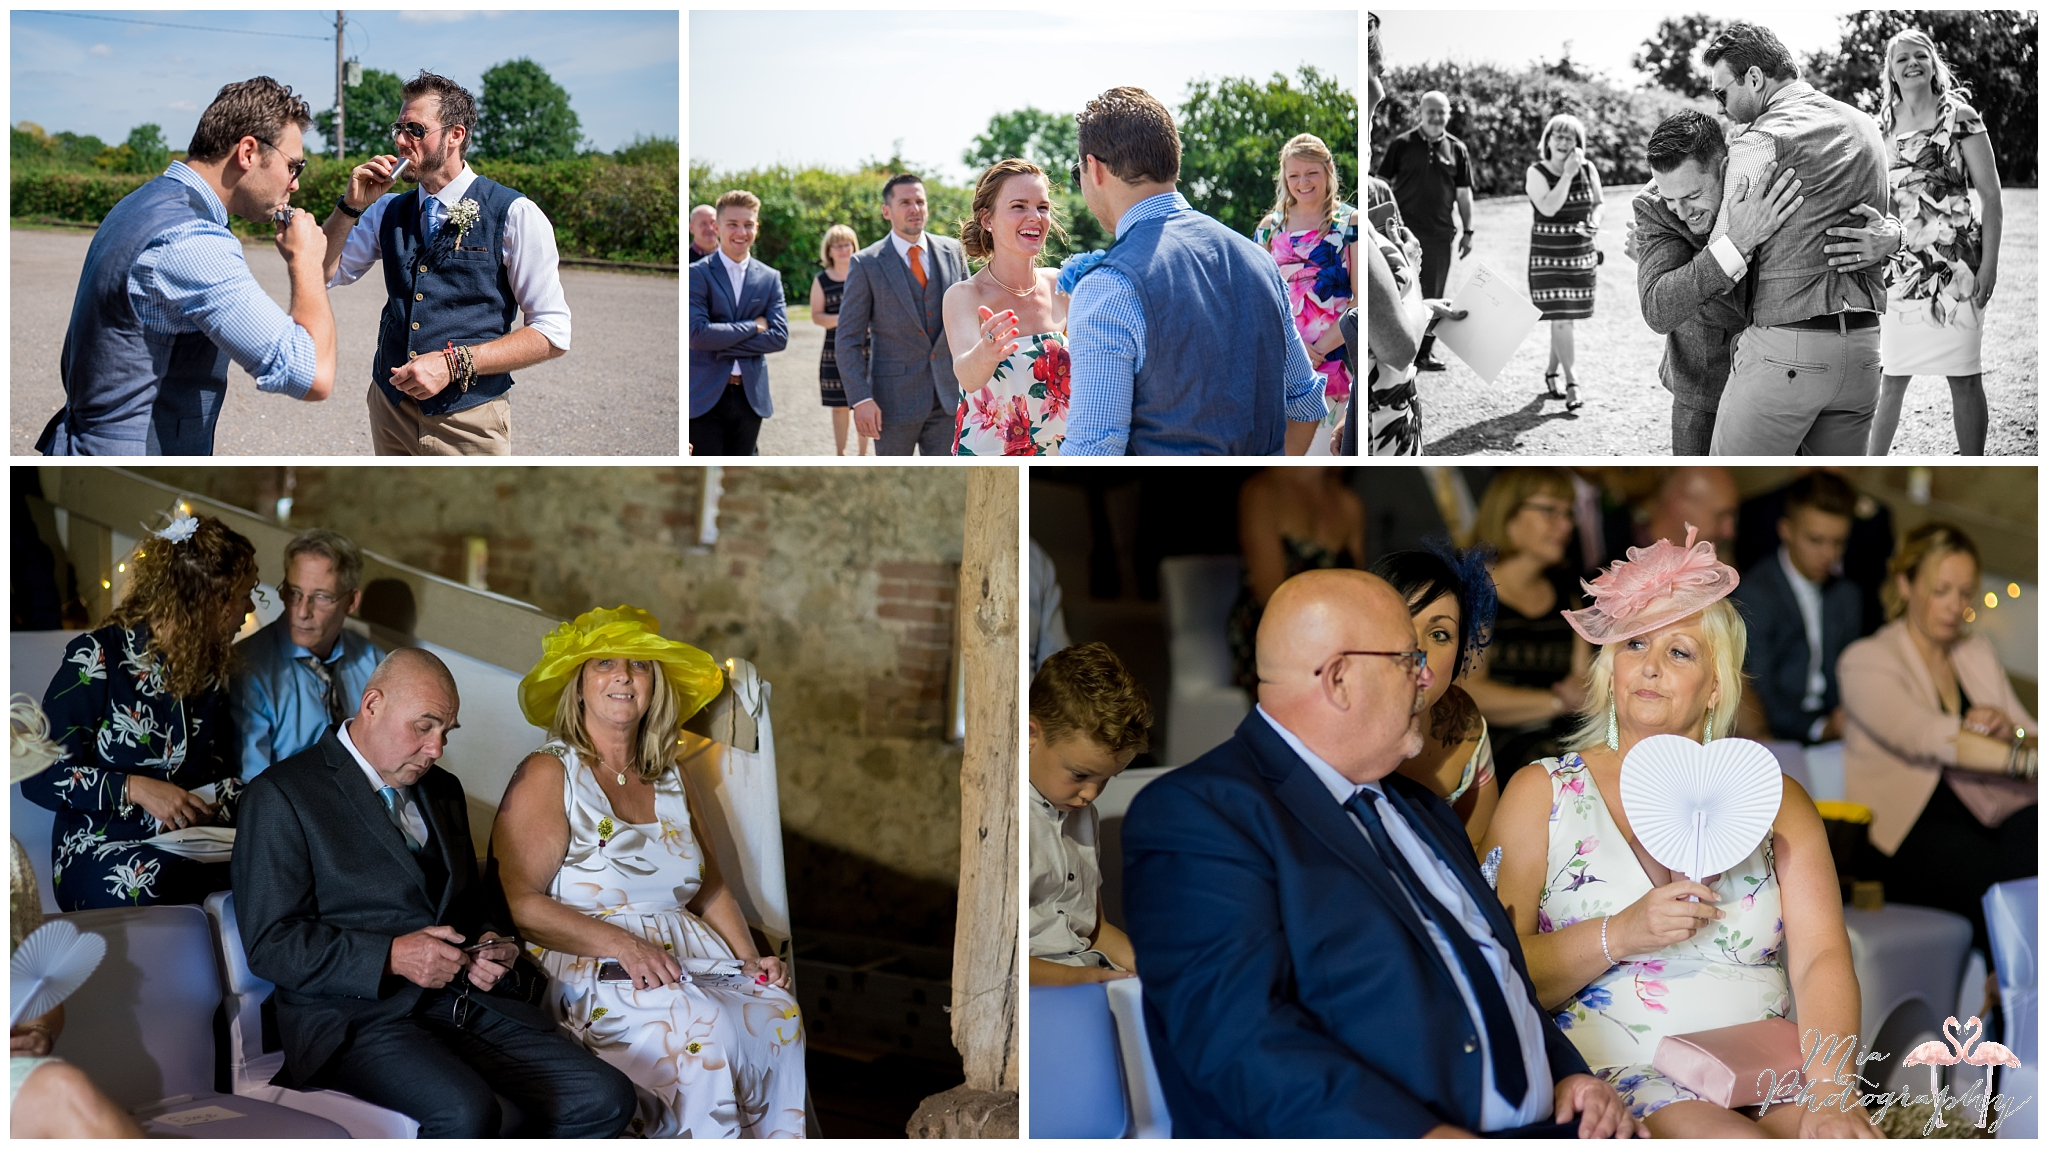 Guests at the great barn at titchfield